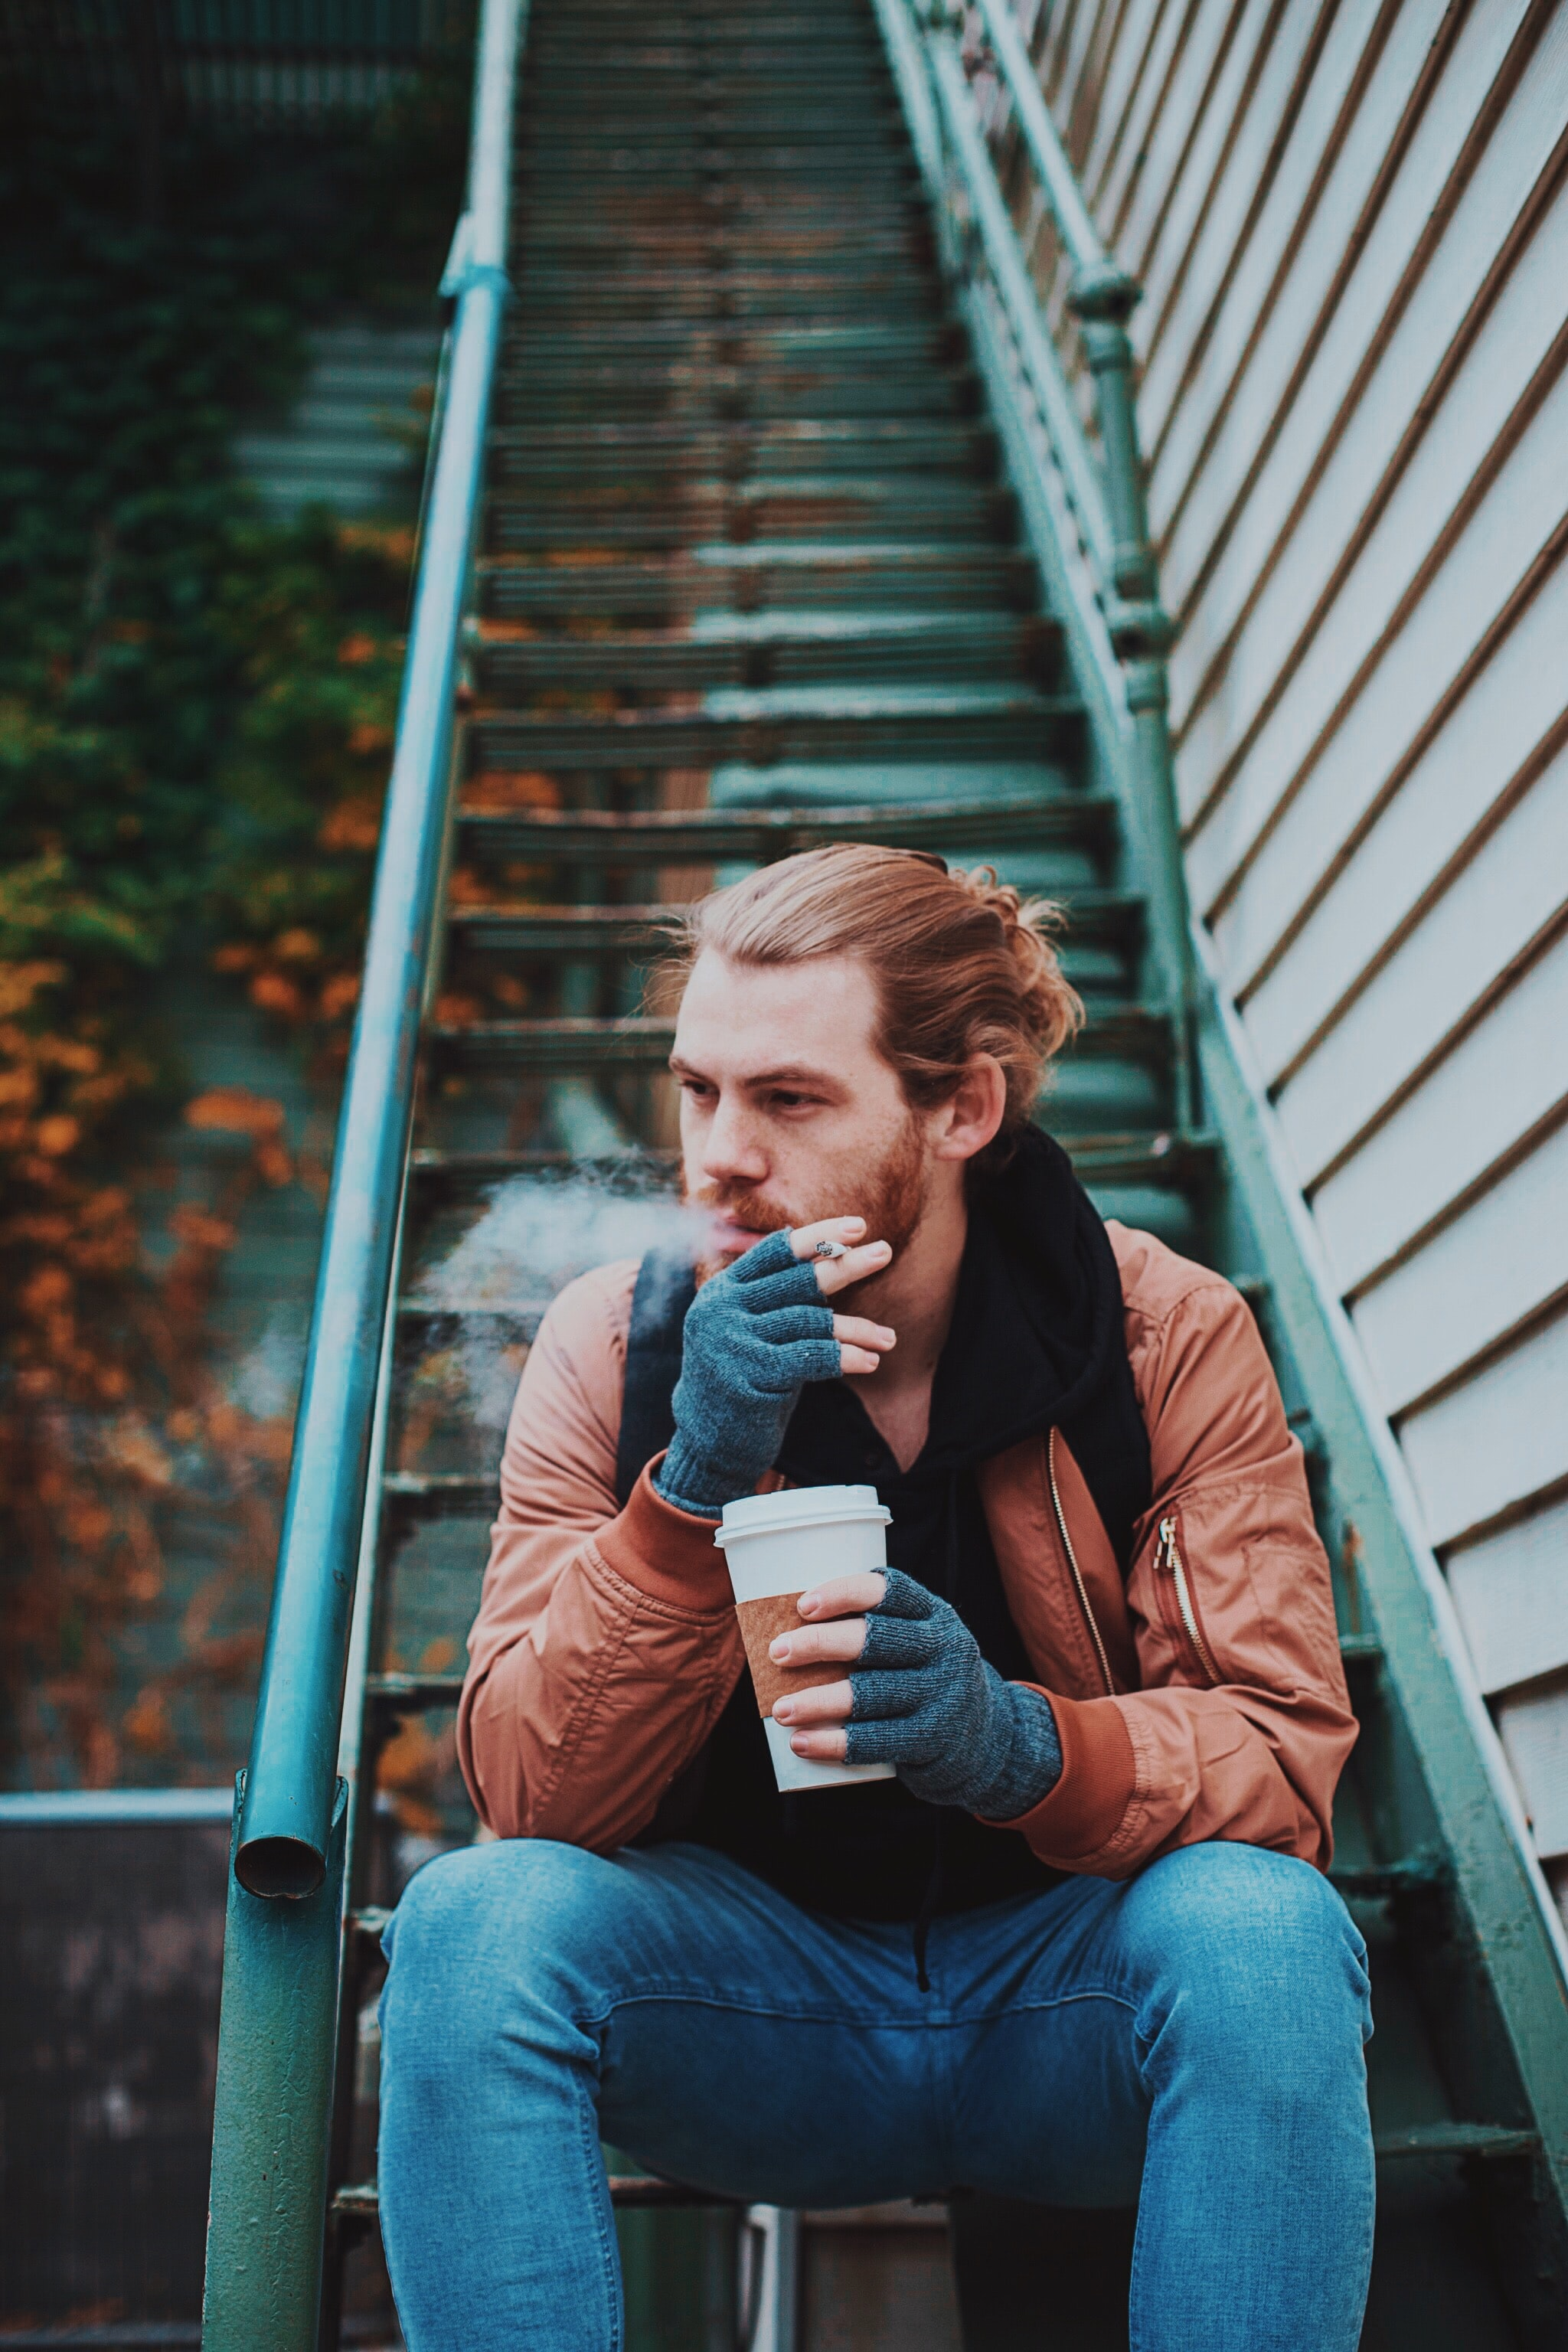 Hipster man with a man bun drinking coffee on a staircase